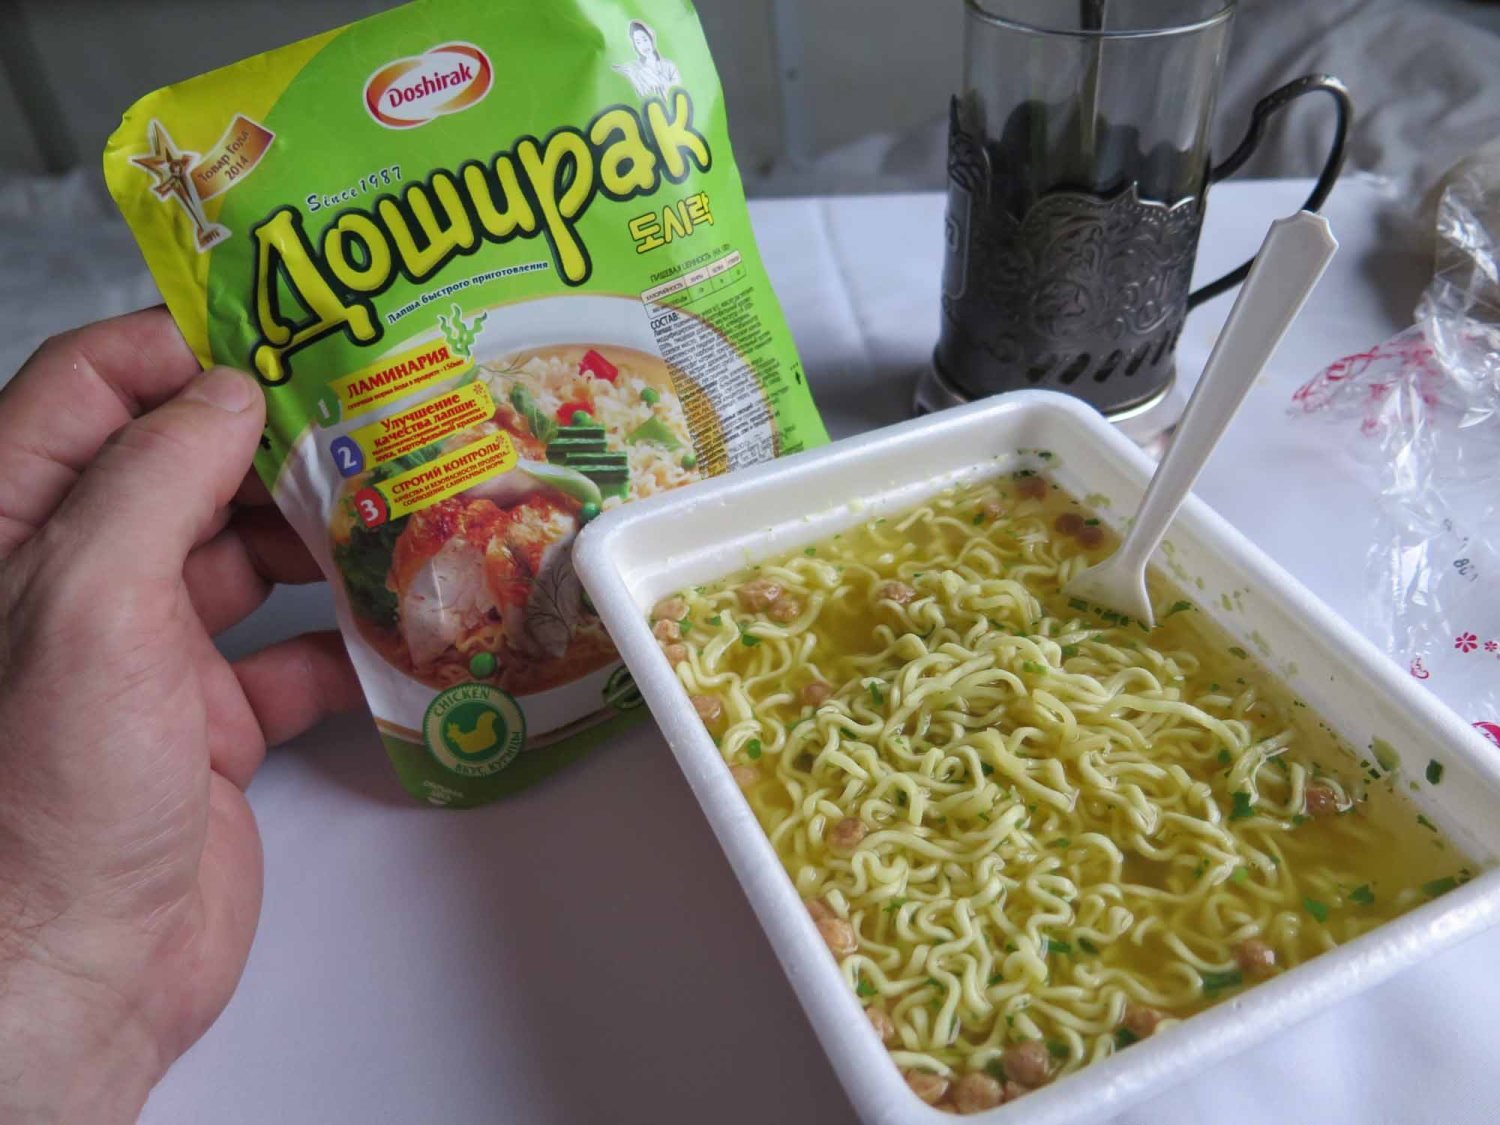 Russia-Trans-Siberian-Railway-Food-And-Drink-Ramen-Noodles